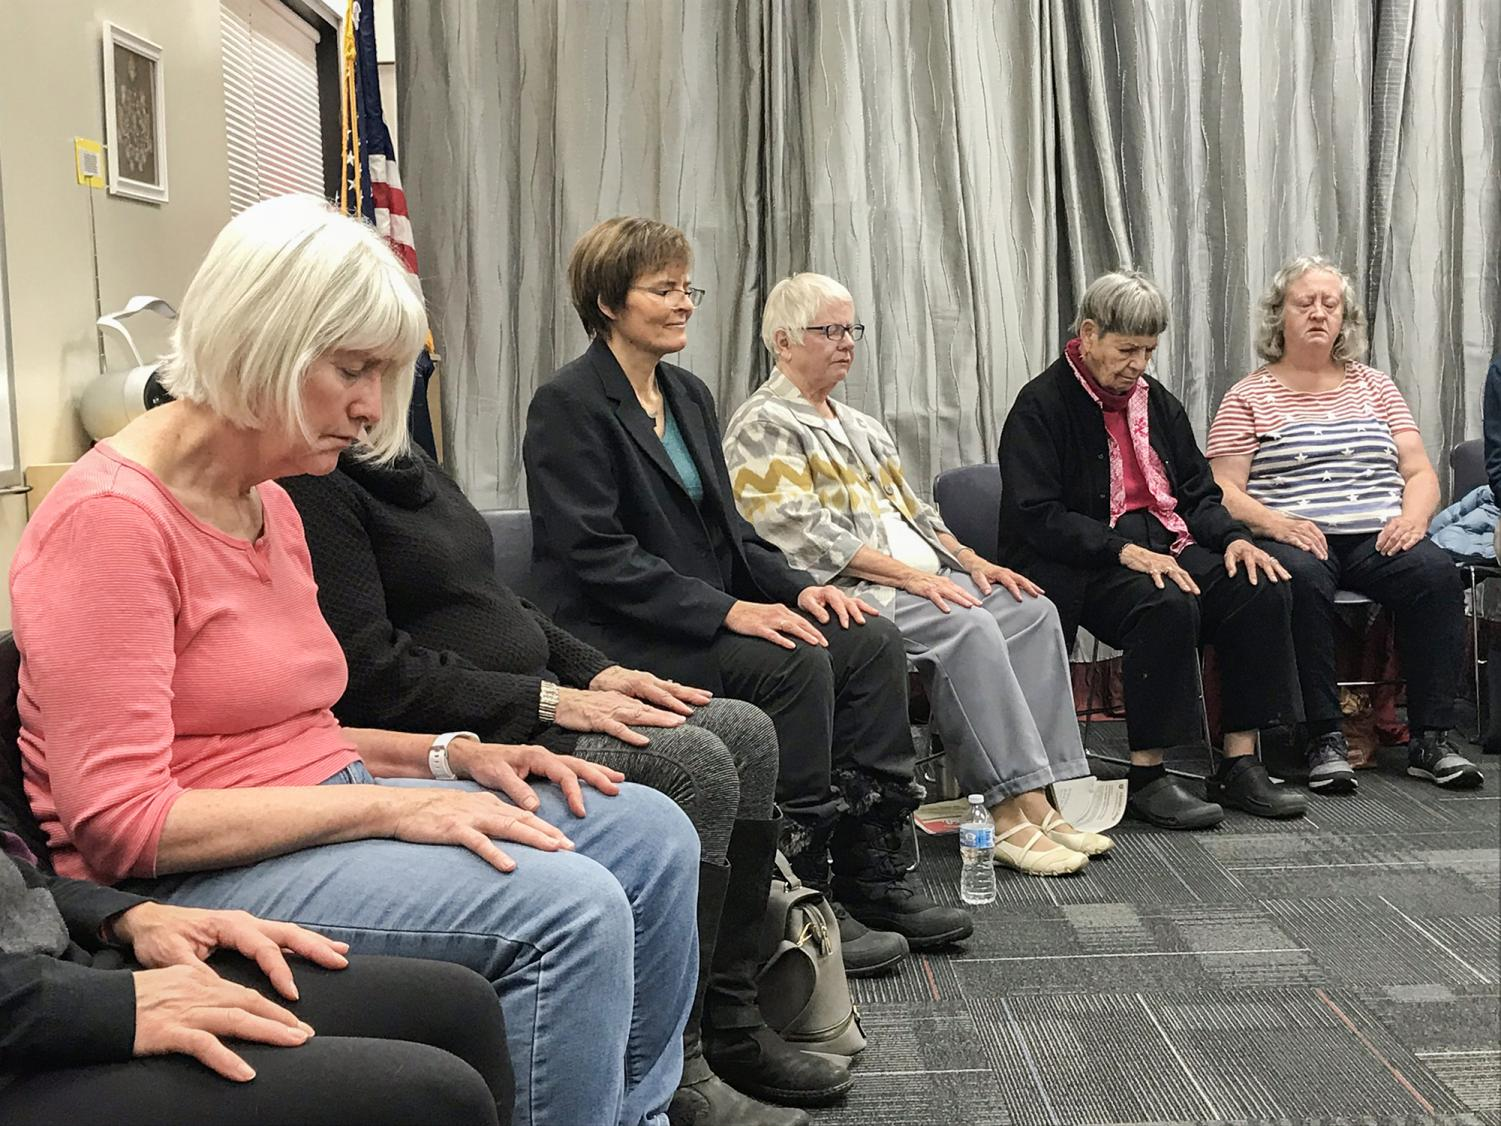 The League of Women Voters of Pullman met for a presentation on mindfulness Tuesday at the Neill Public Library. Lydia Gerber, a clinical associate professor in the WSU Honors College, led a six-minute meditation for attendees.